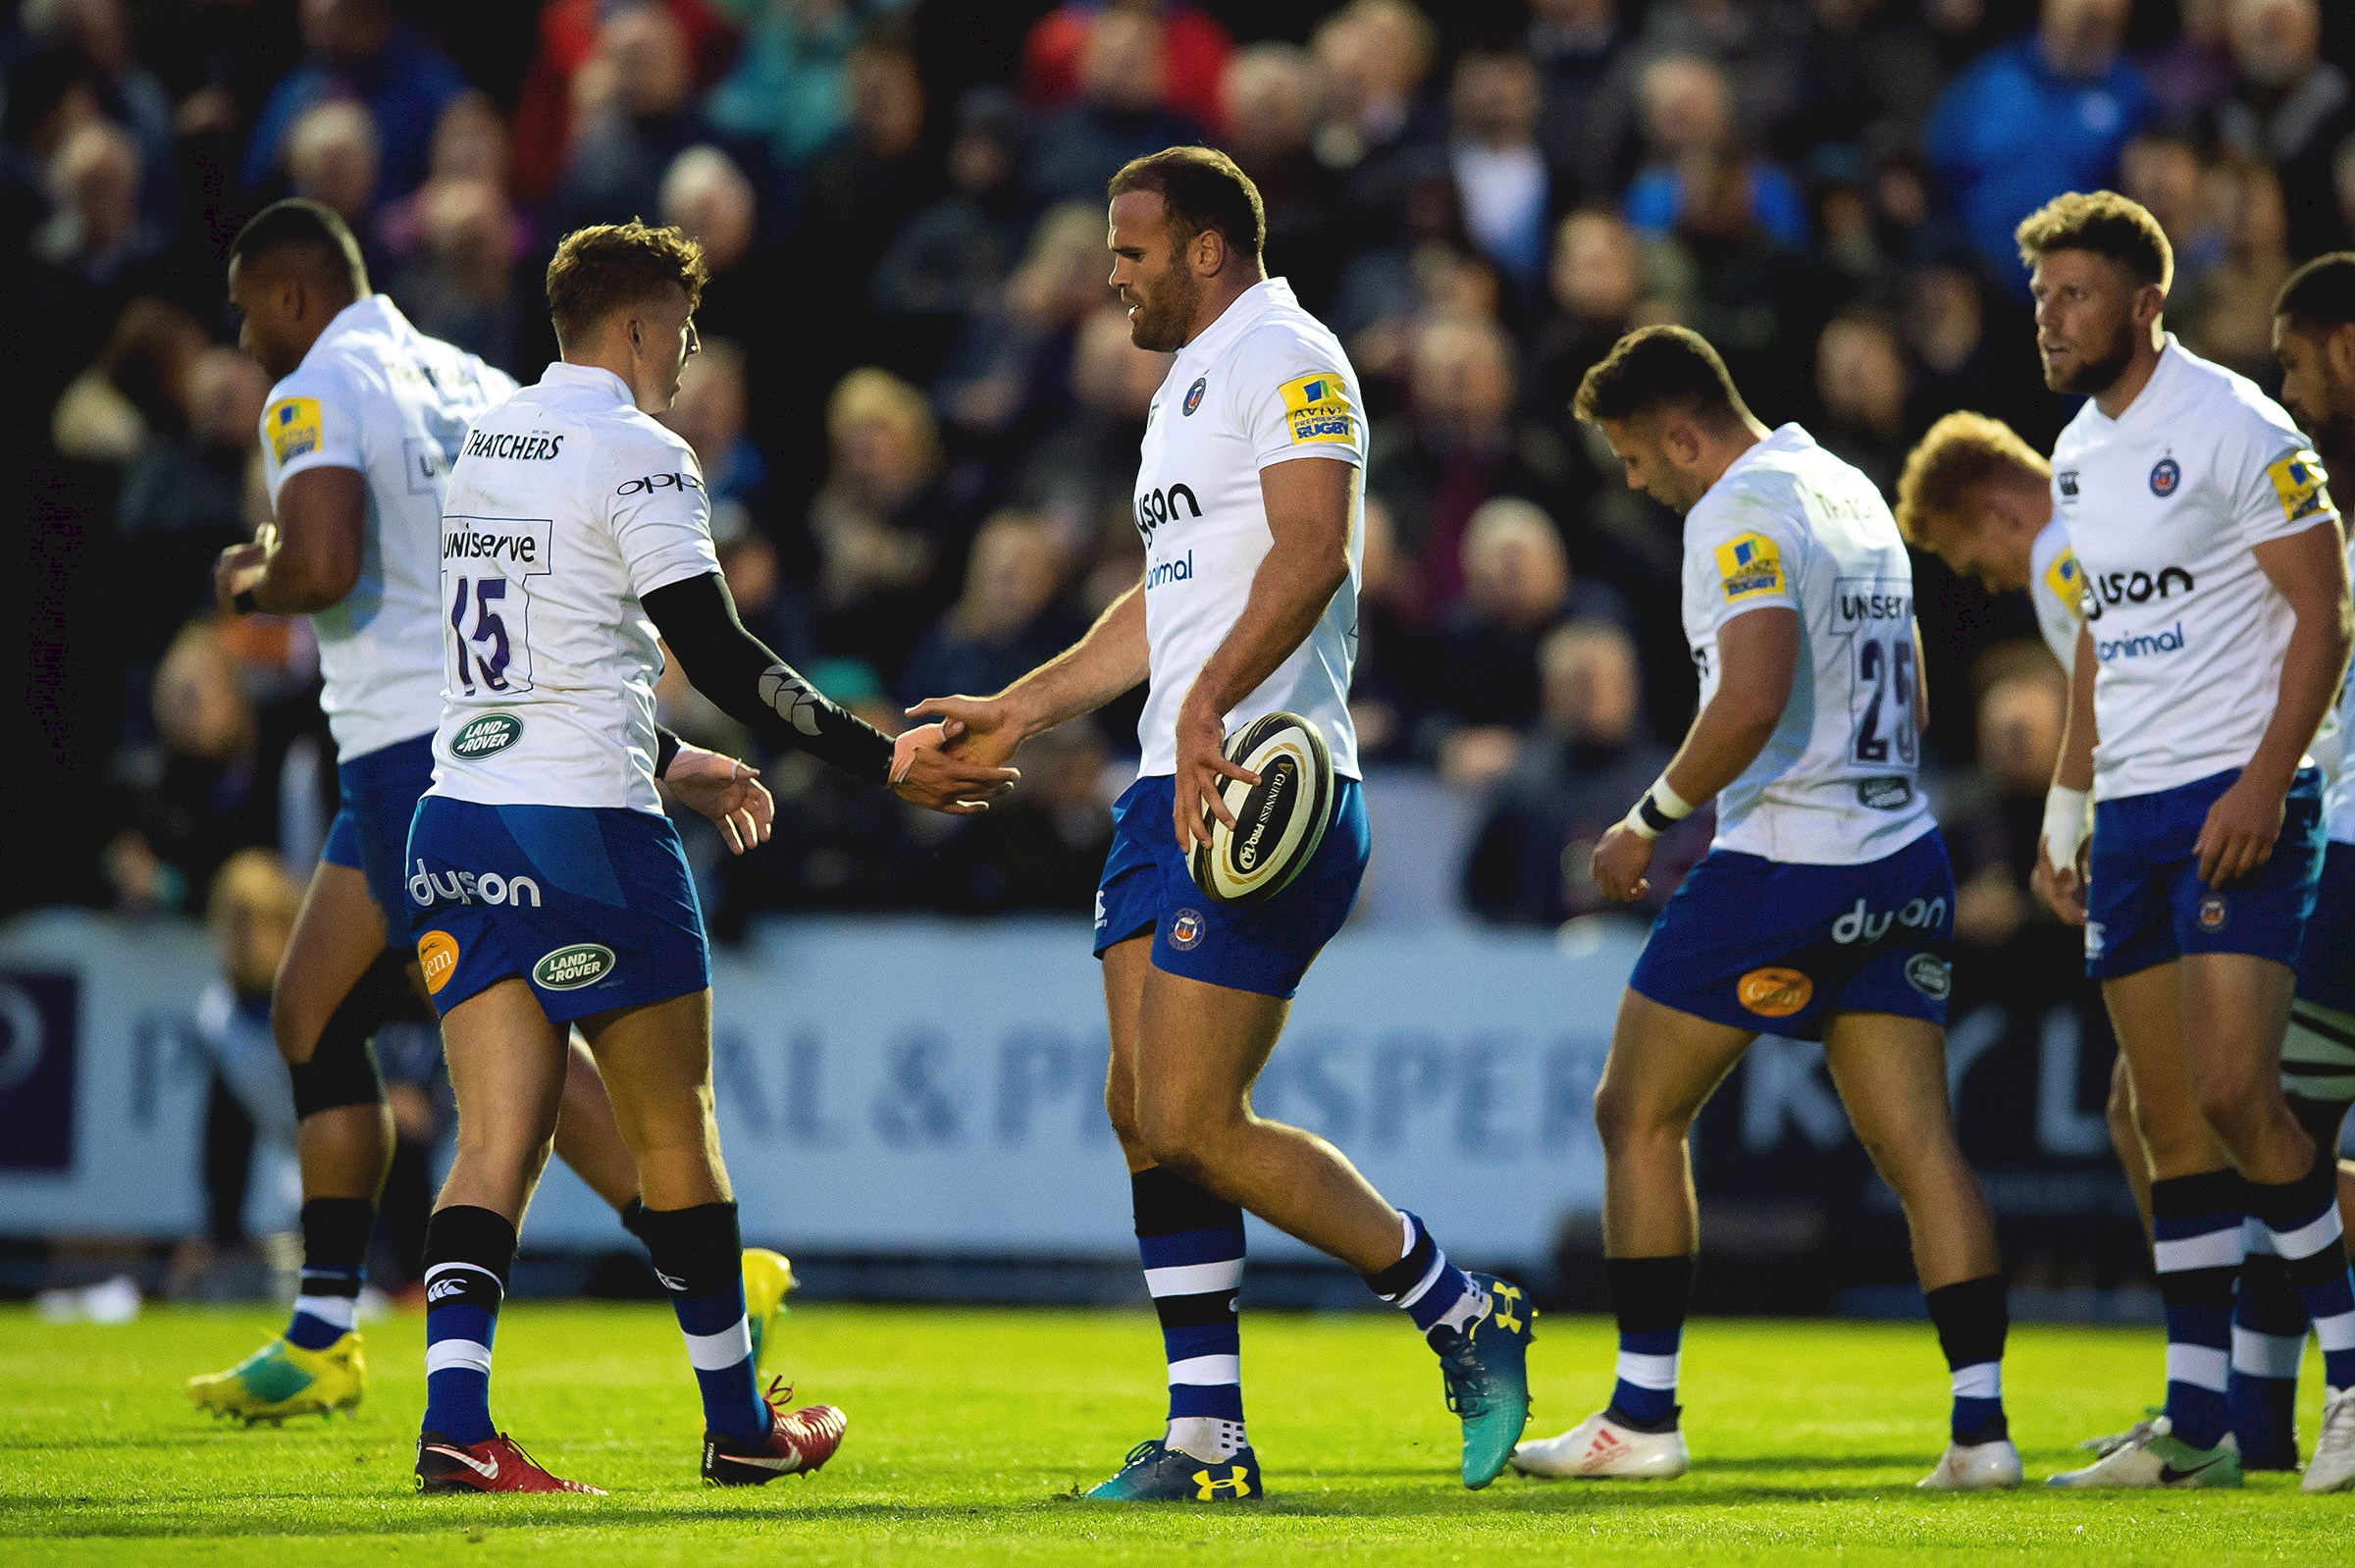 Roberts scores debut try as Bath Rugby secure victory over Edinburgh